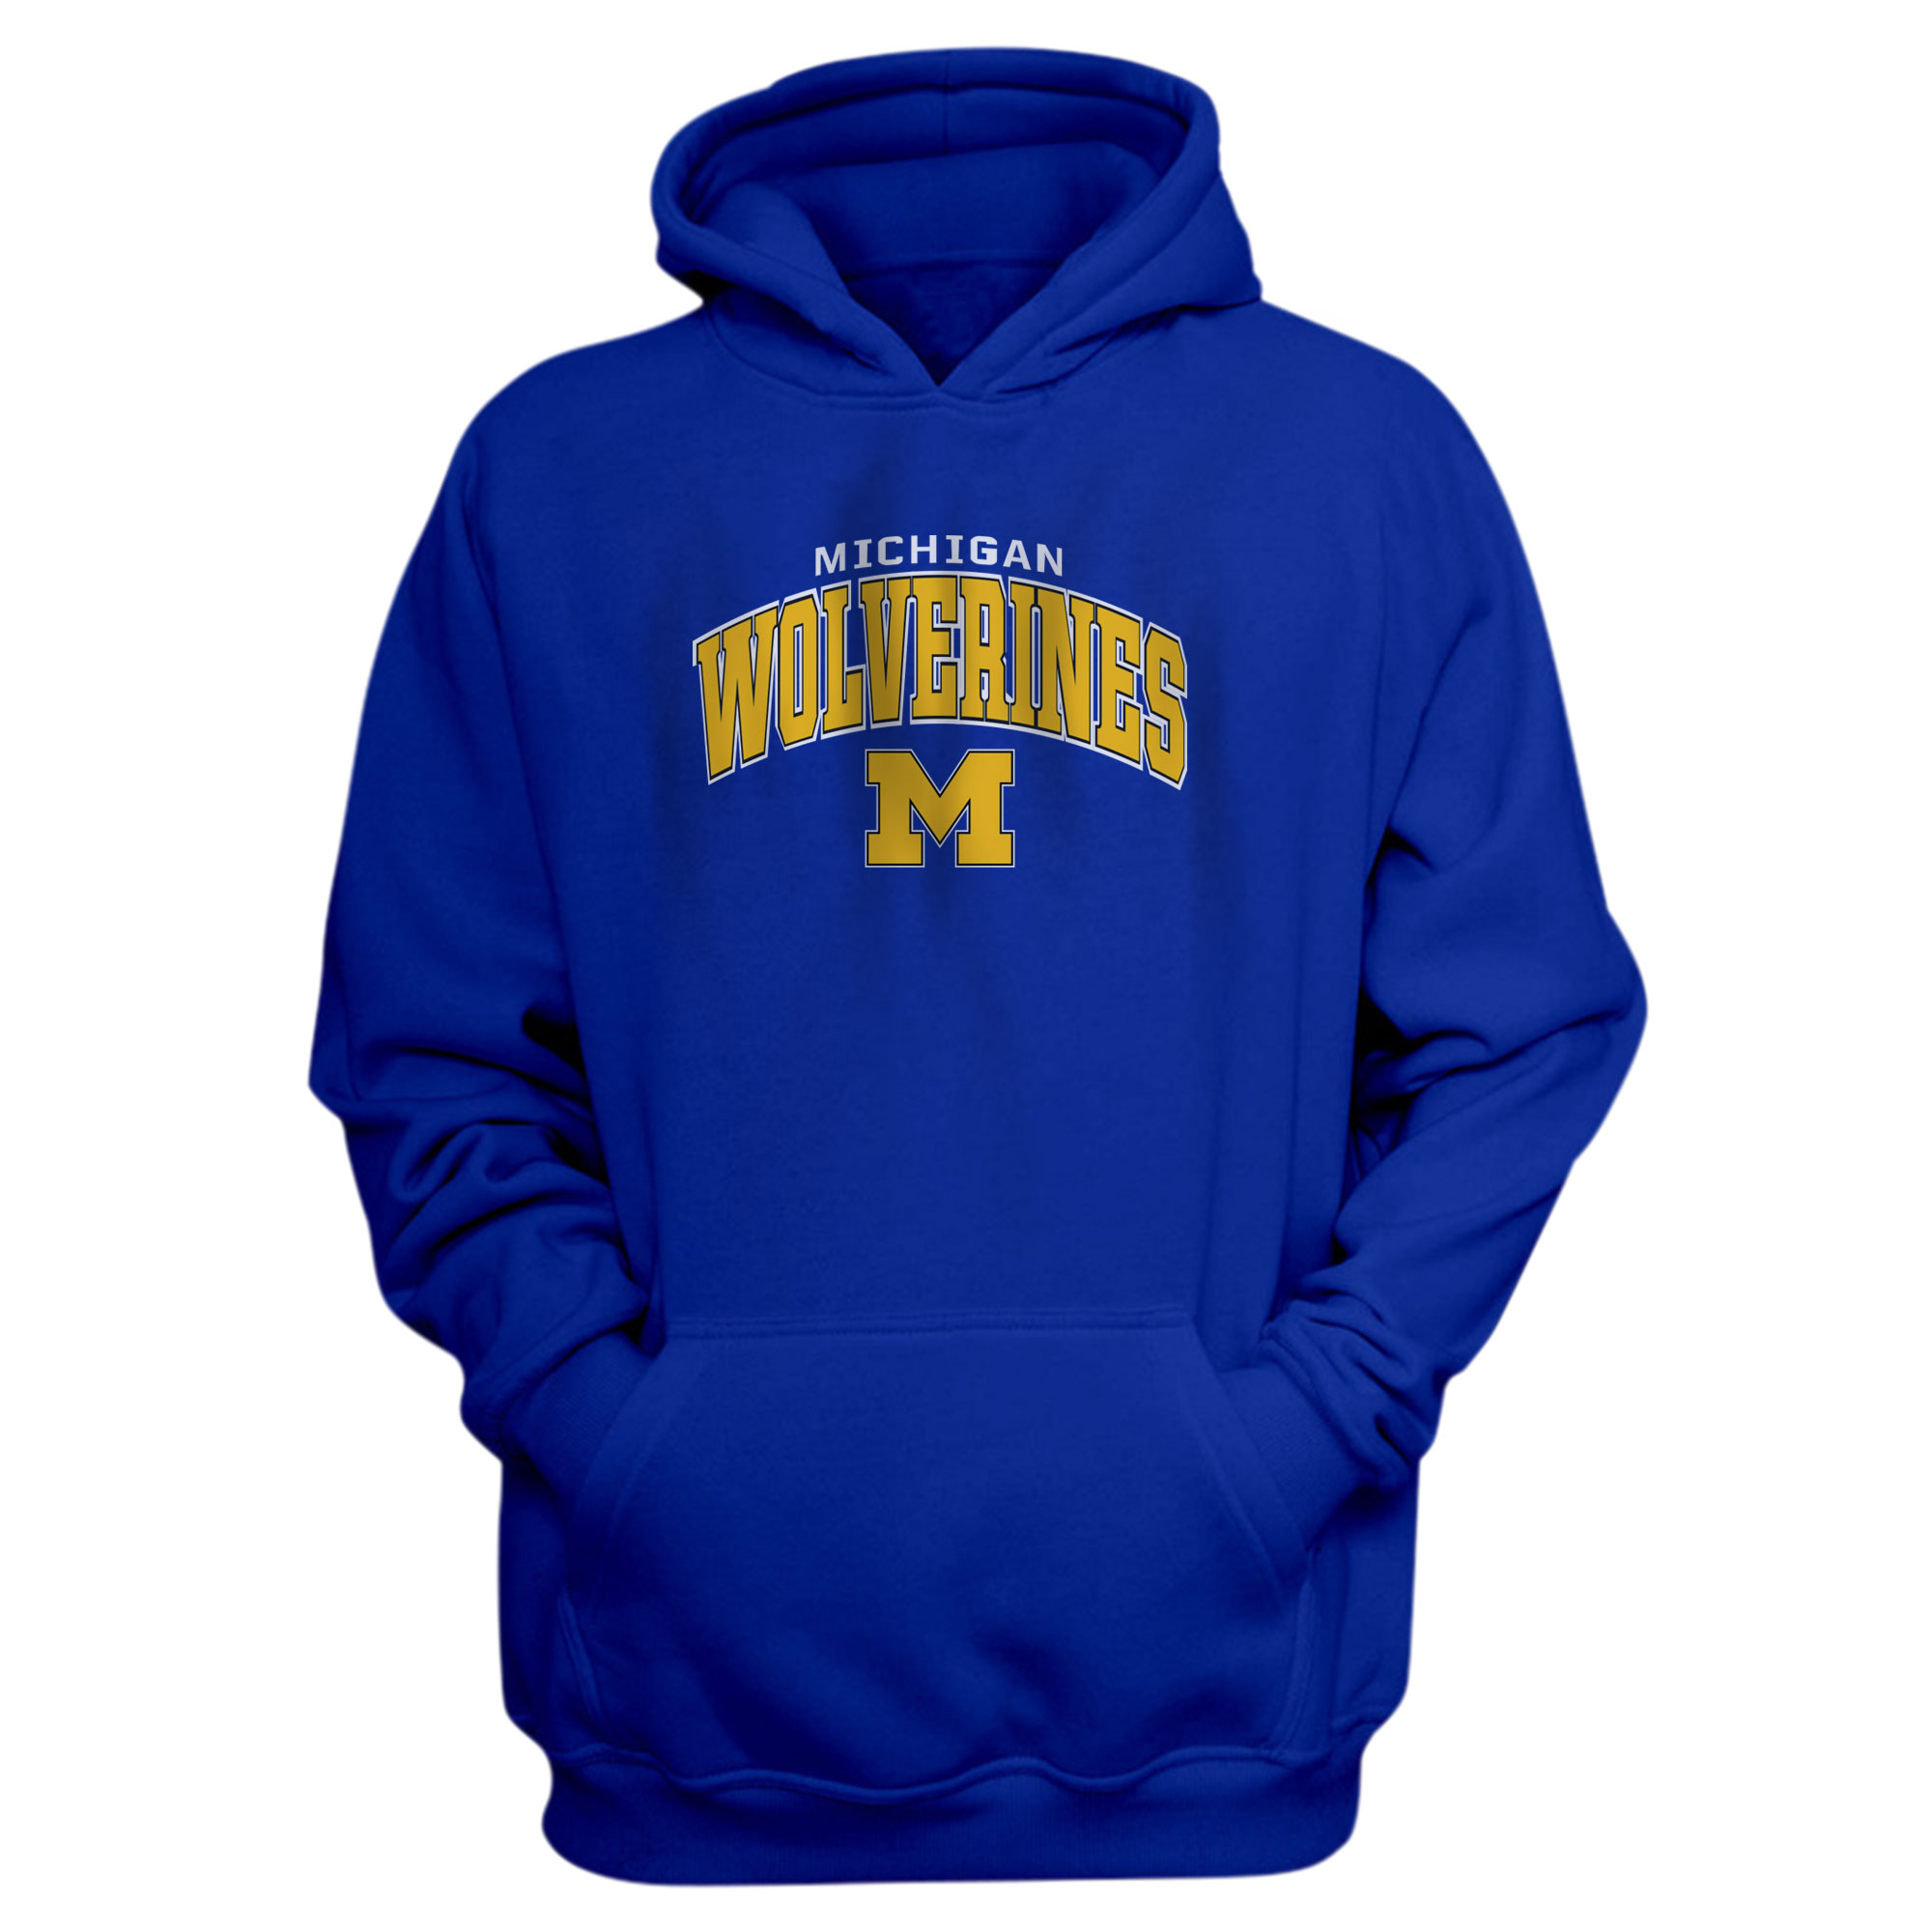 Michigan Wolverines Hoodie (HD-BLC-488-NBA-MNW)